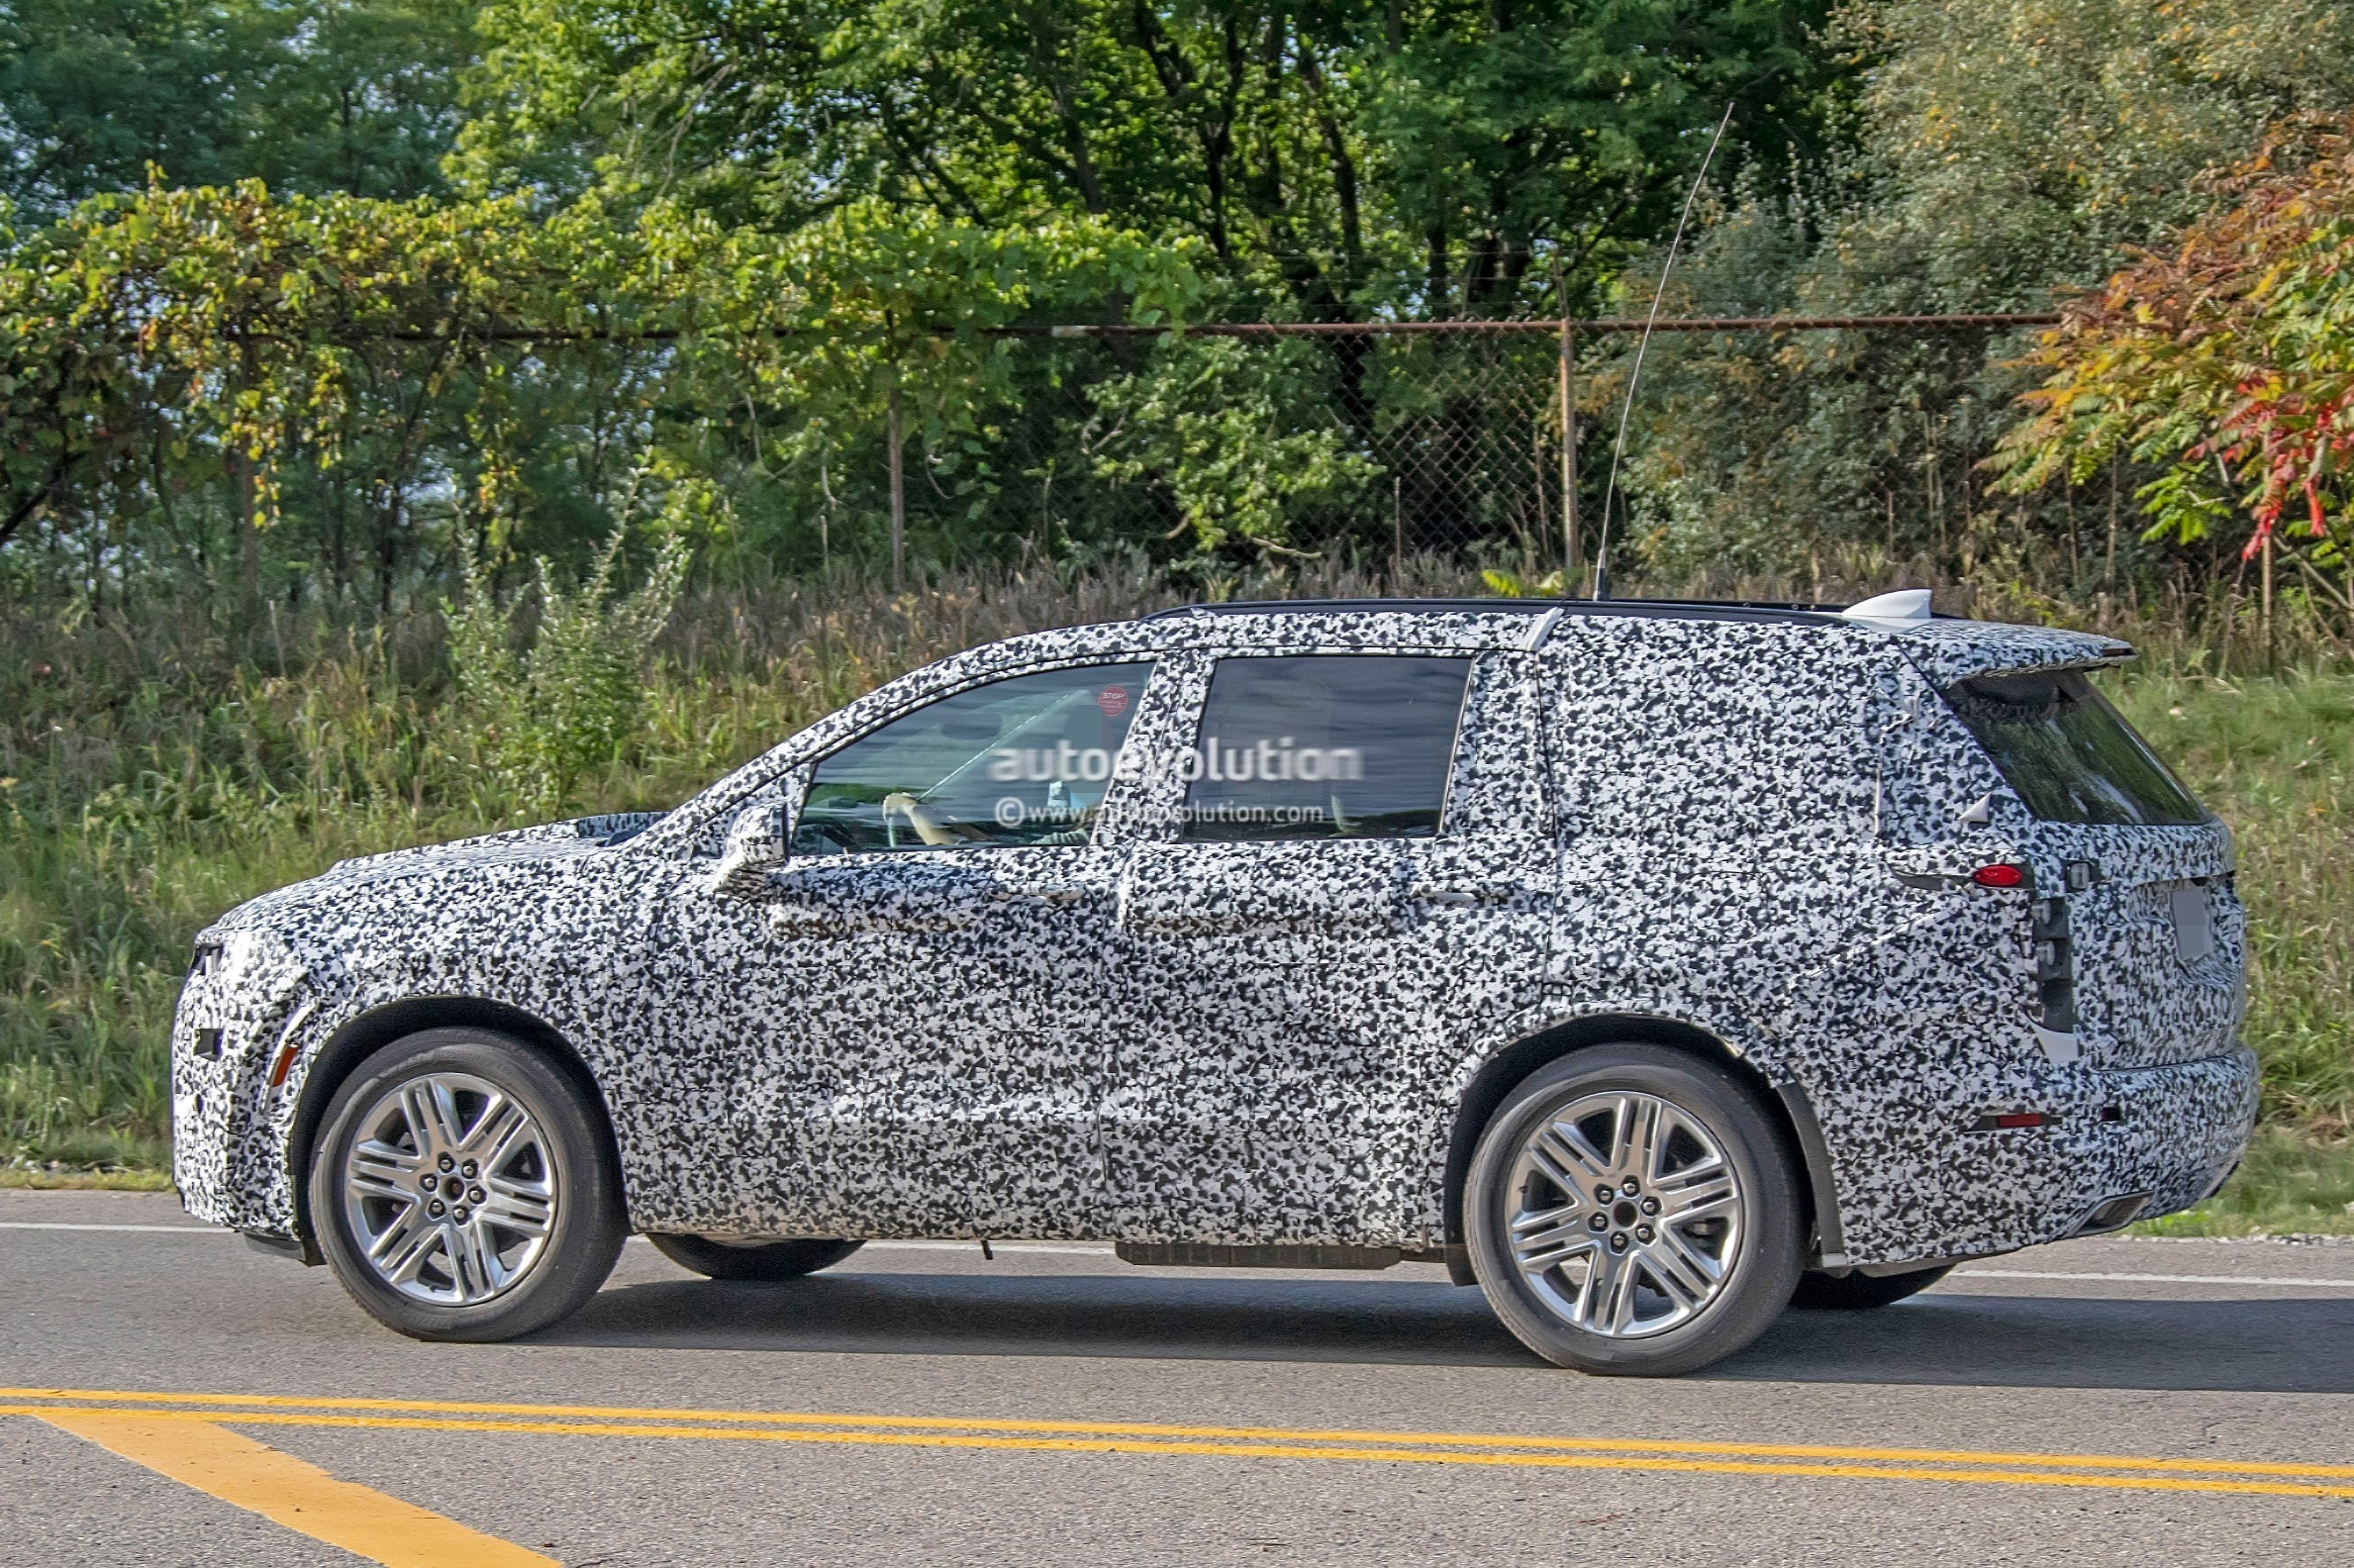 2020 Cadillac Xt6 Spied With Seating For Seven People Autoevolution